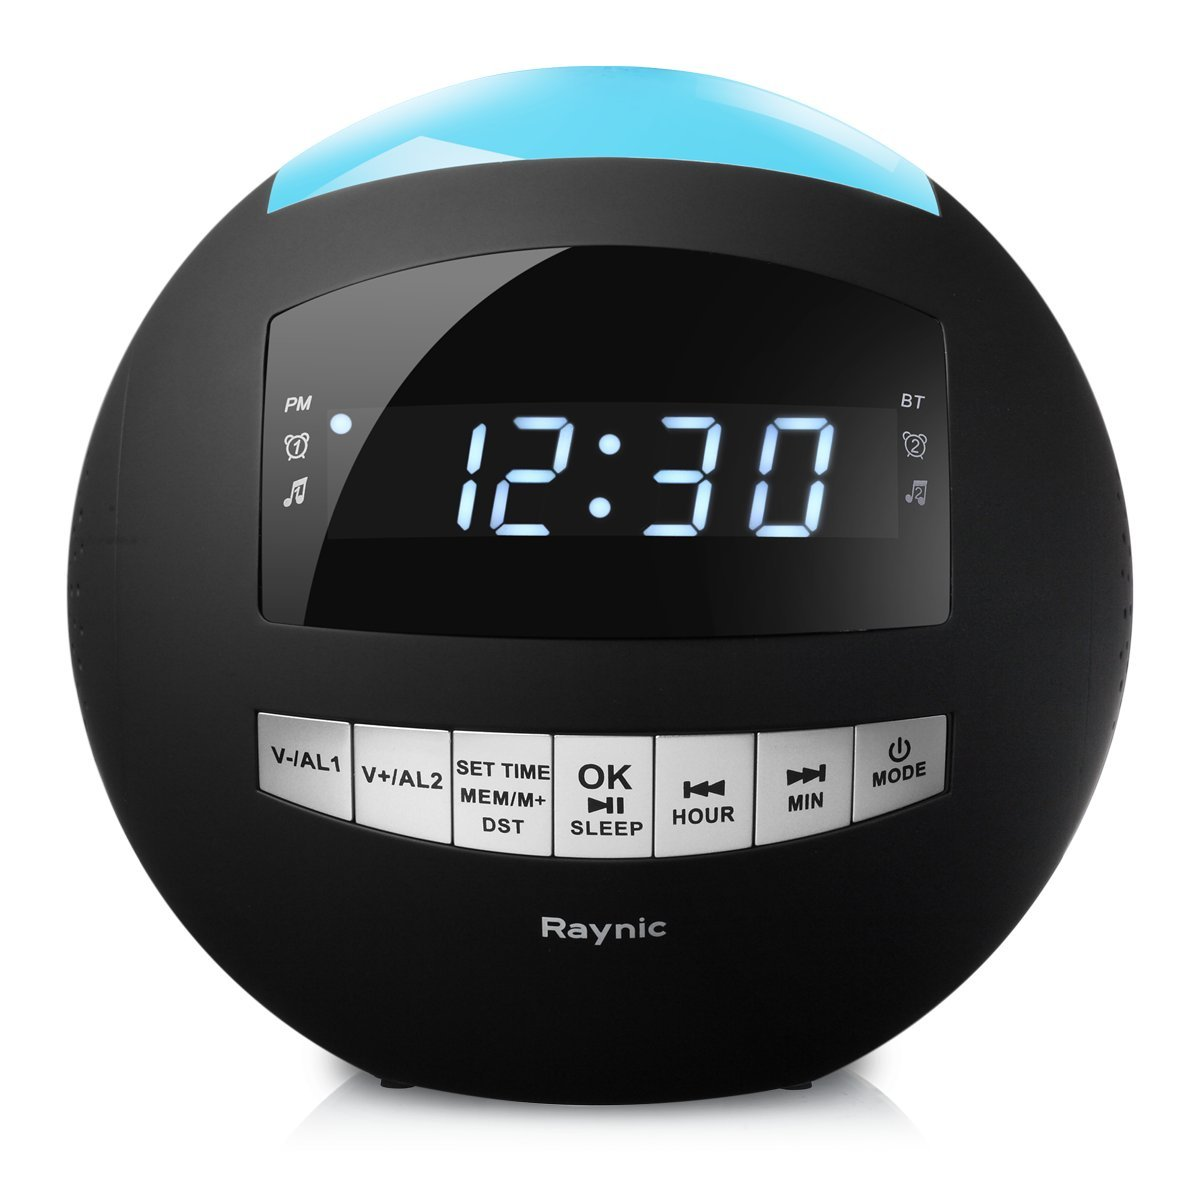 8-in-1 Bluetooth Alarm Clock Radio (Digital) Dual USB Charging Ports, FM Stereo, Dimmable LED Display, Nap & Sleep Timers, Snooze, Multi-Color Night Light (Black)